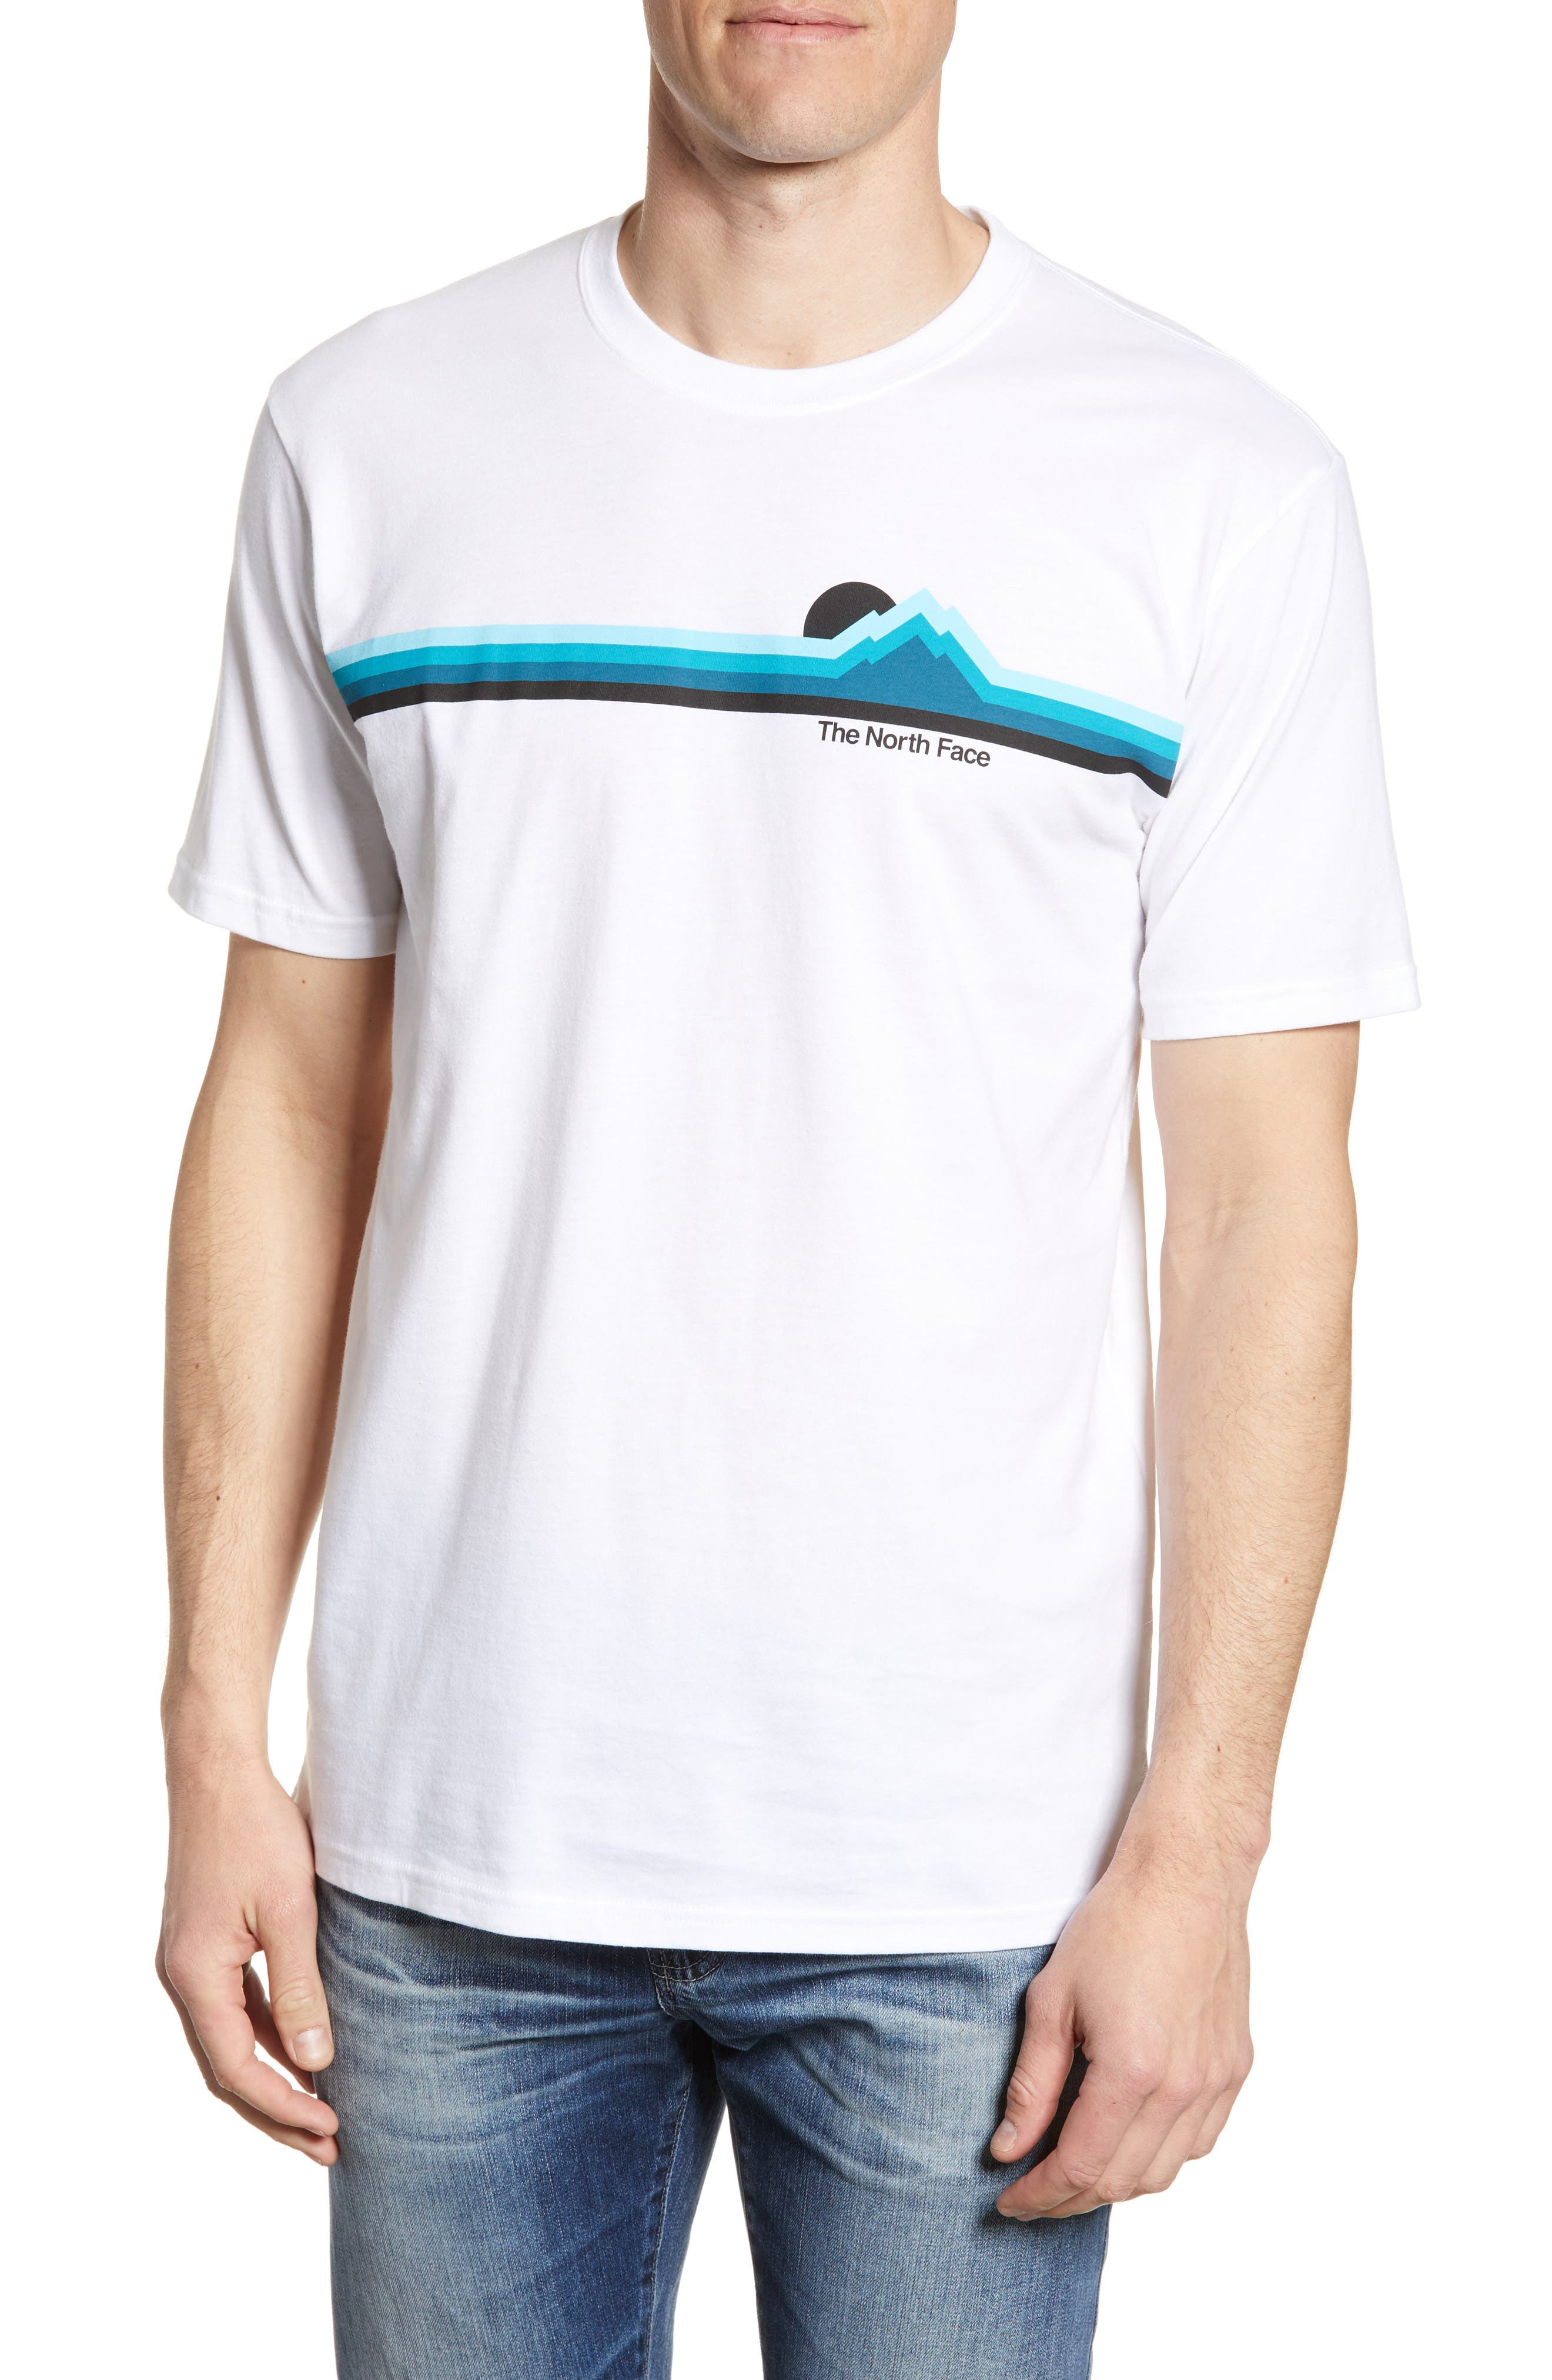 15d85a1a3 Men's The North Face T-Shirts, Tank Tops, & Graphic Tees | Nordstrom